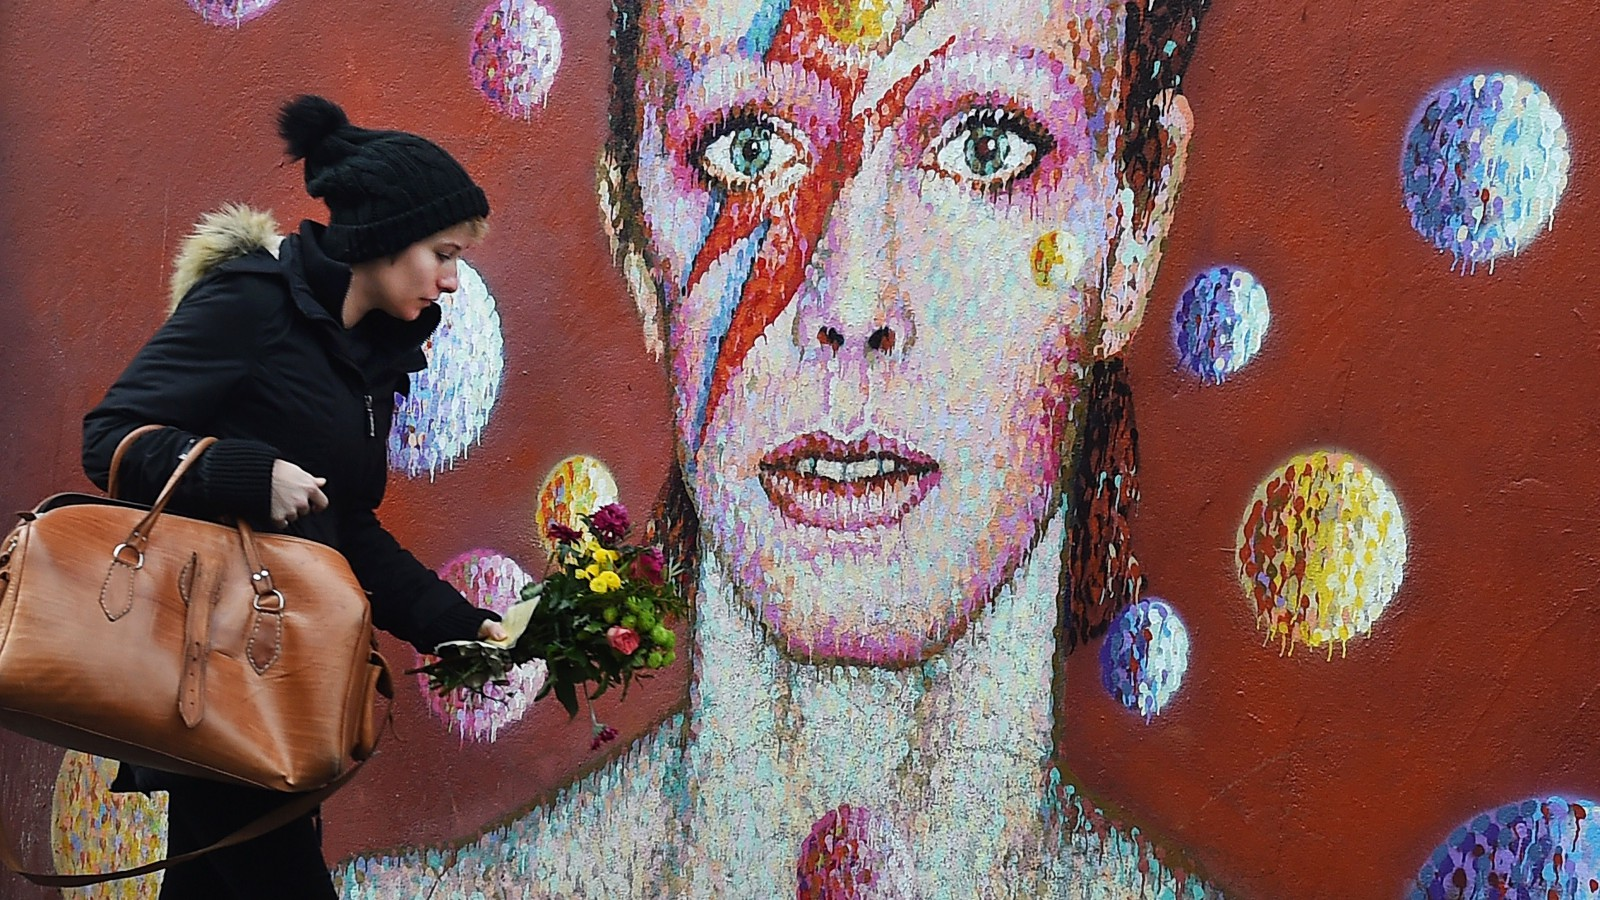 epa05096790 A women lays flowers at a mural of British singer David Bowie in Brixton, birth place of the late David Bowie in London, Britain, 11 January 2016. Well-wishers have flocked to the Bowie mural to pay their respects following the announcement of his death. According to reports quoting David Bowie's son and his official Facebook page, Bowie, 69, has died on 10 January 2016 after a battle with cancer.  EPA/ANDY RAIN